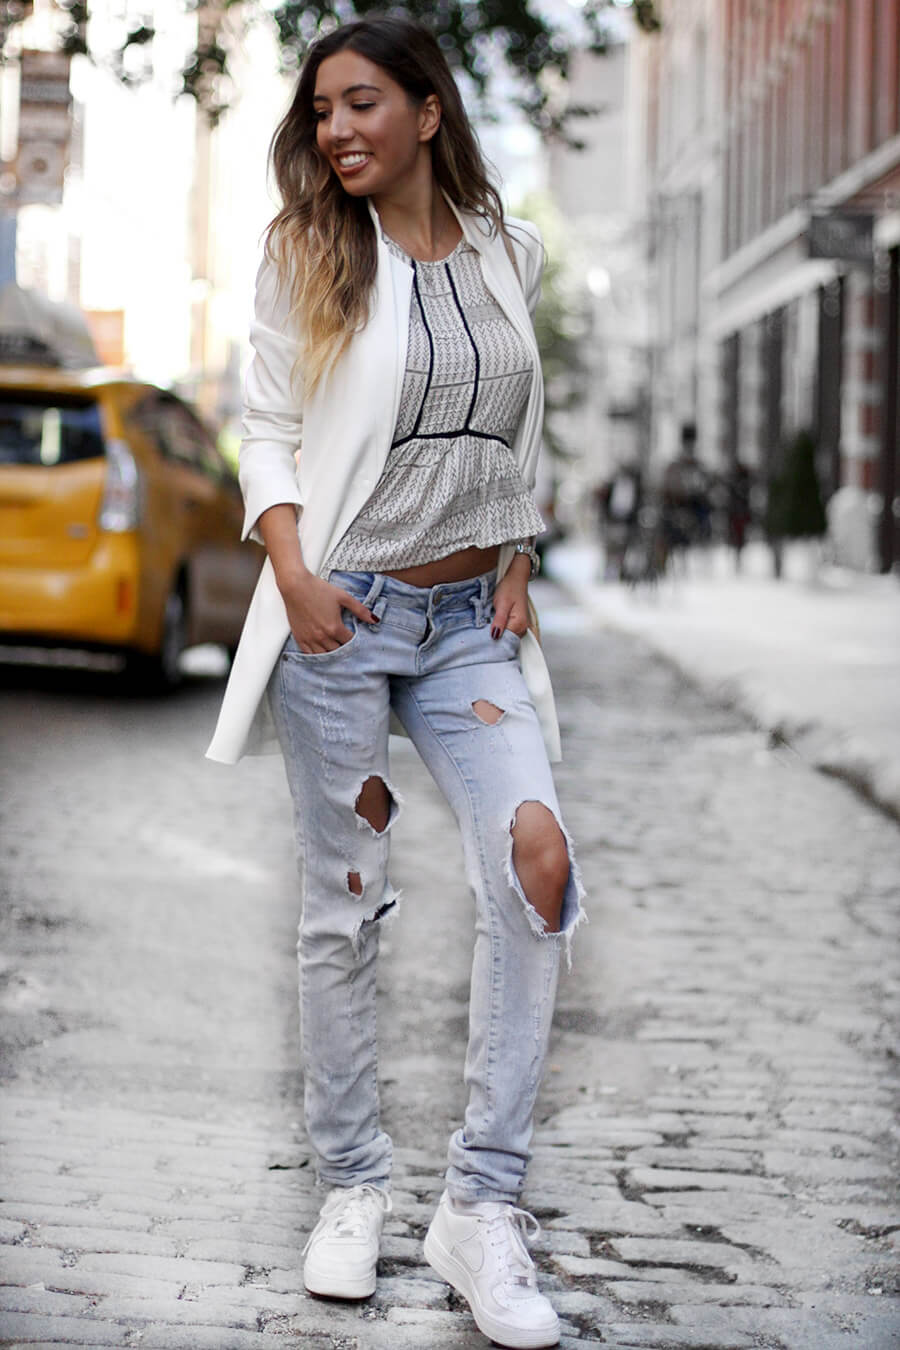 Ripped sexy jeans look